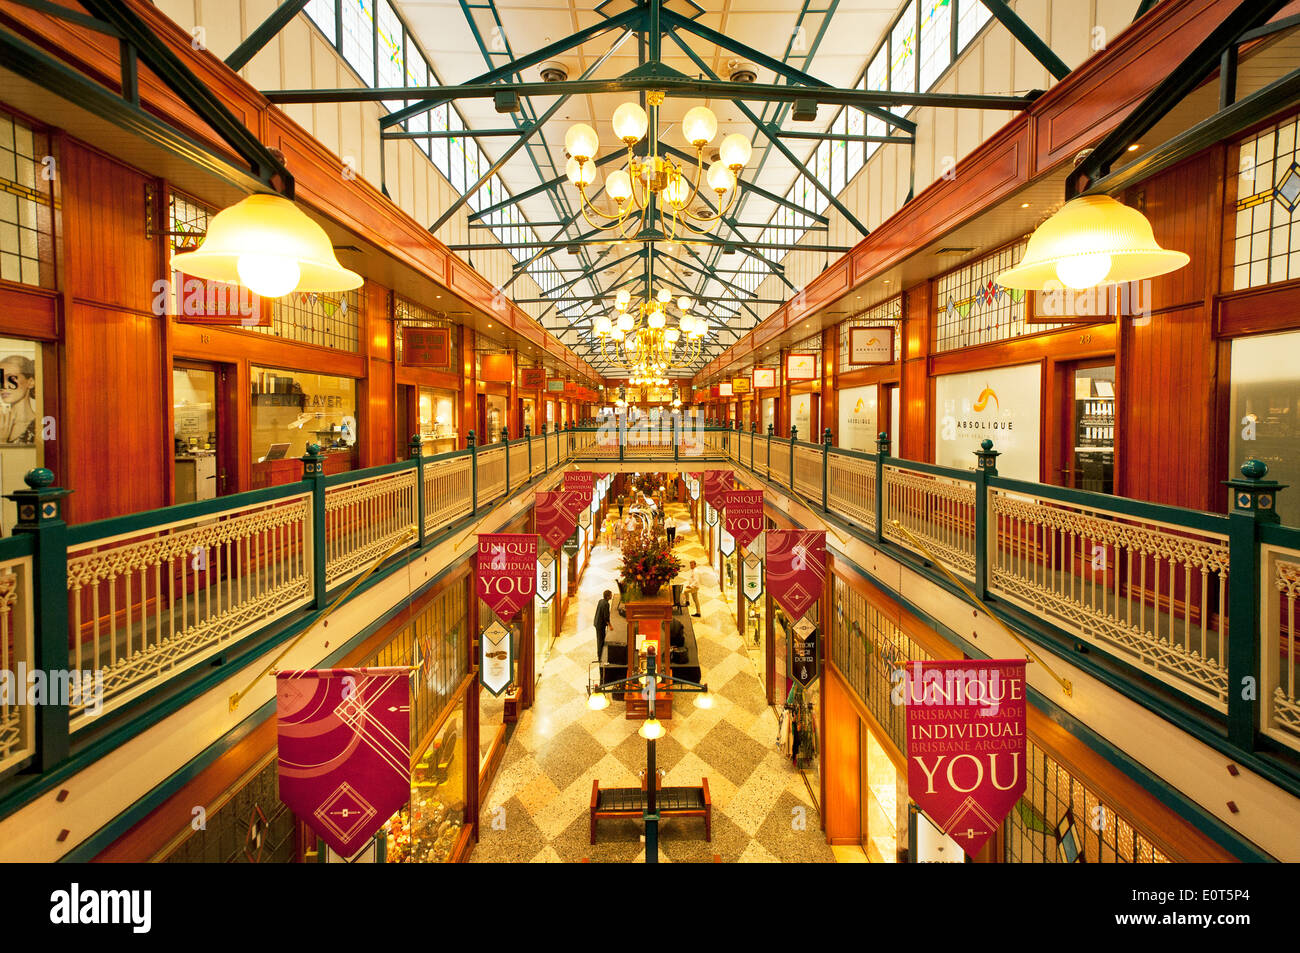 View into Queen Street Arcade in Brisbane. - Stock Image